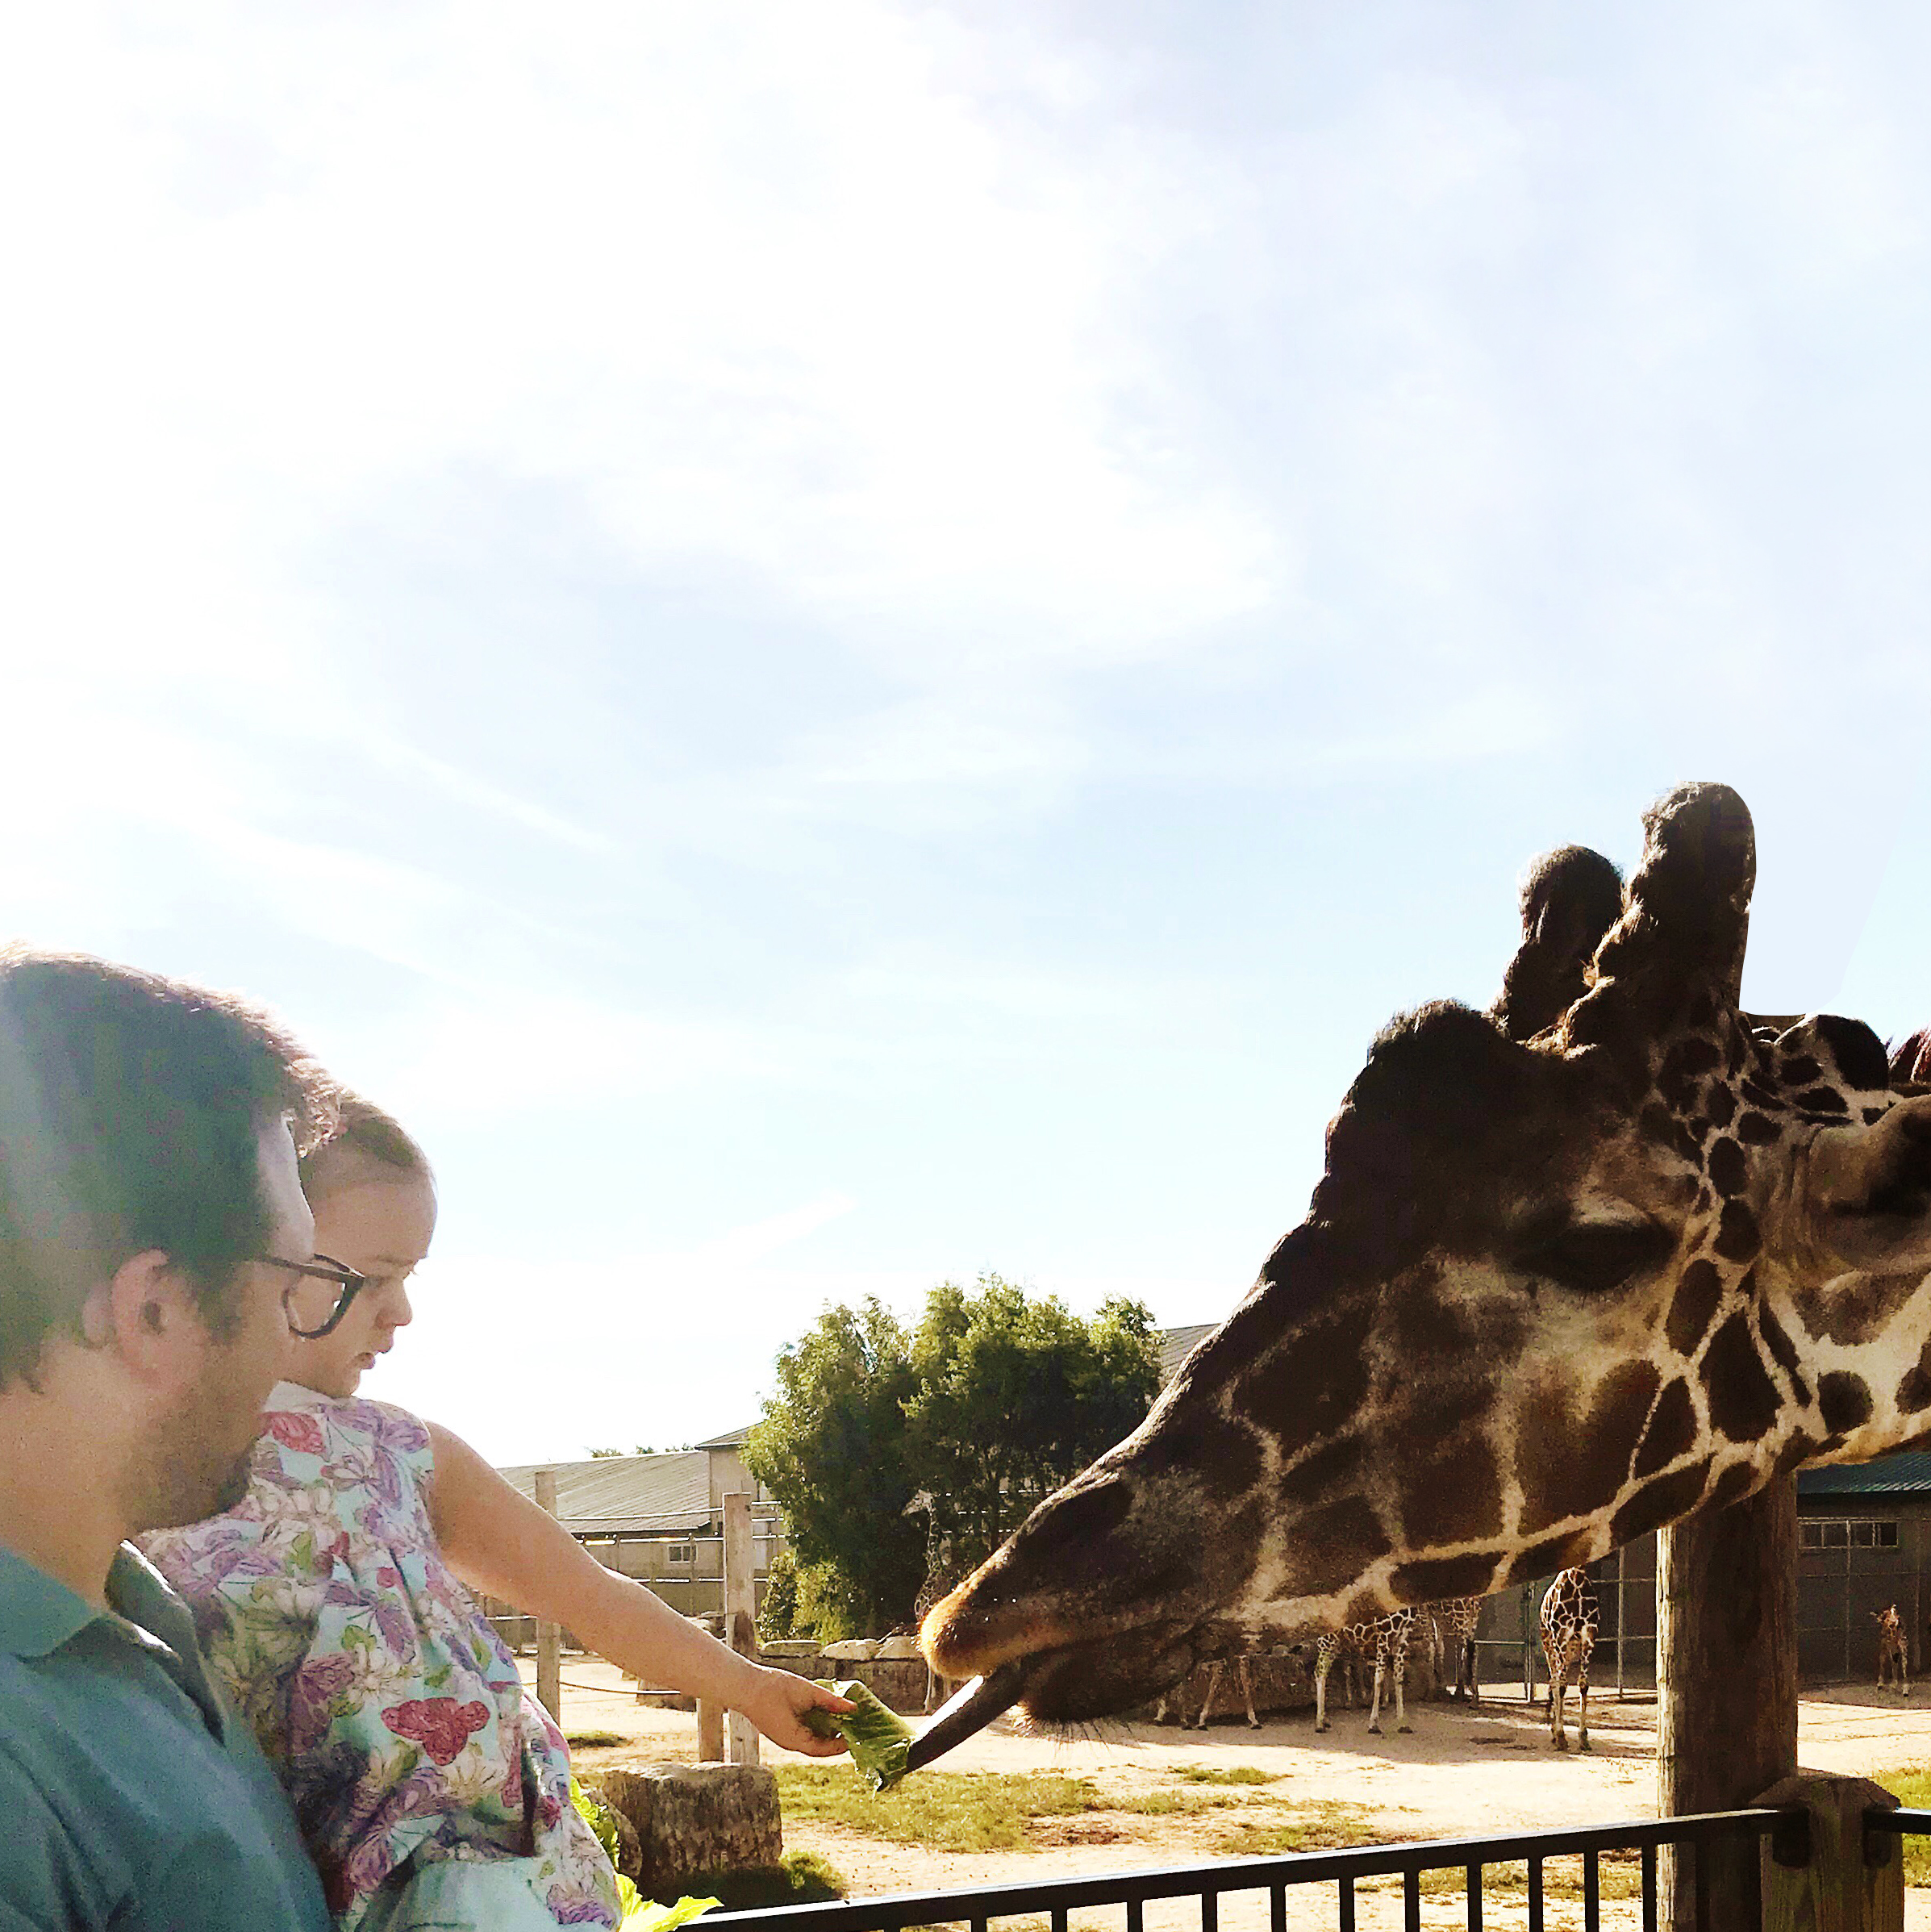 Feeding a Giraffe | Places to Visit in Wichita, KS Tanganyika Wildlife Park | MALLORIE OWENS